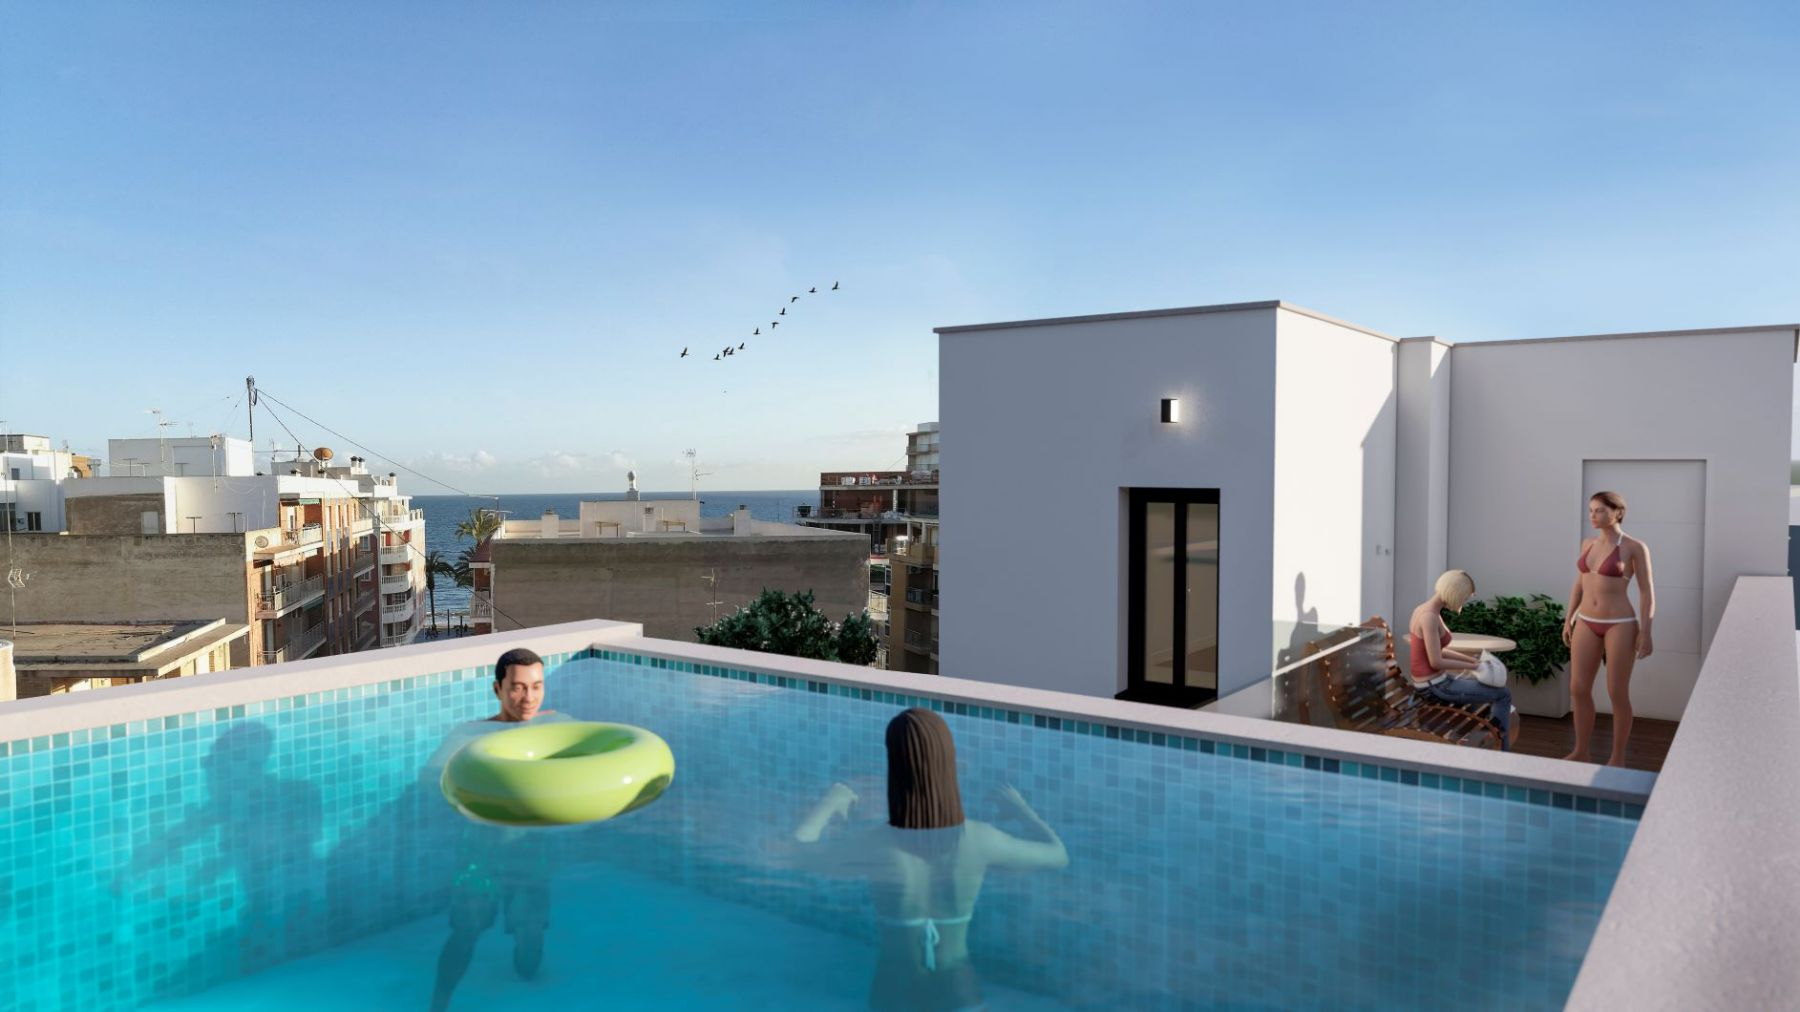 New Build 2 Bedrooms Apartments For Sale in Torrevieja - 300 m from Playa del Cura